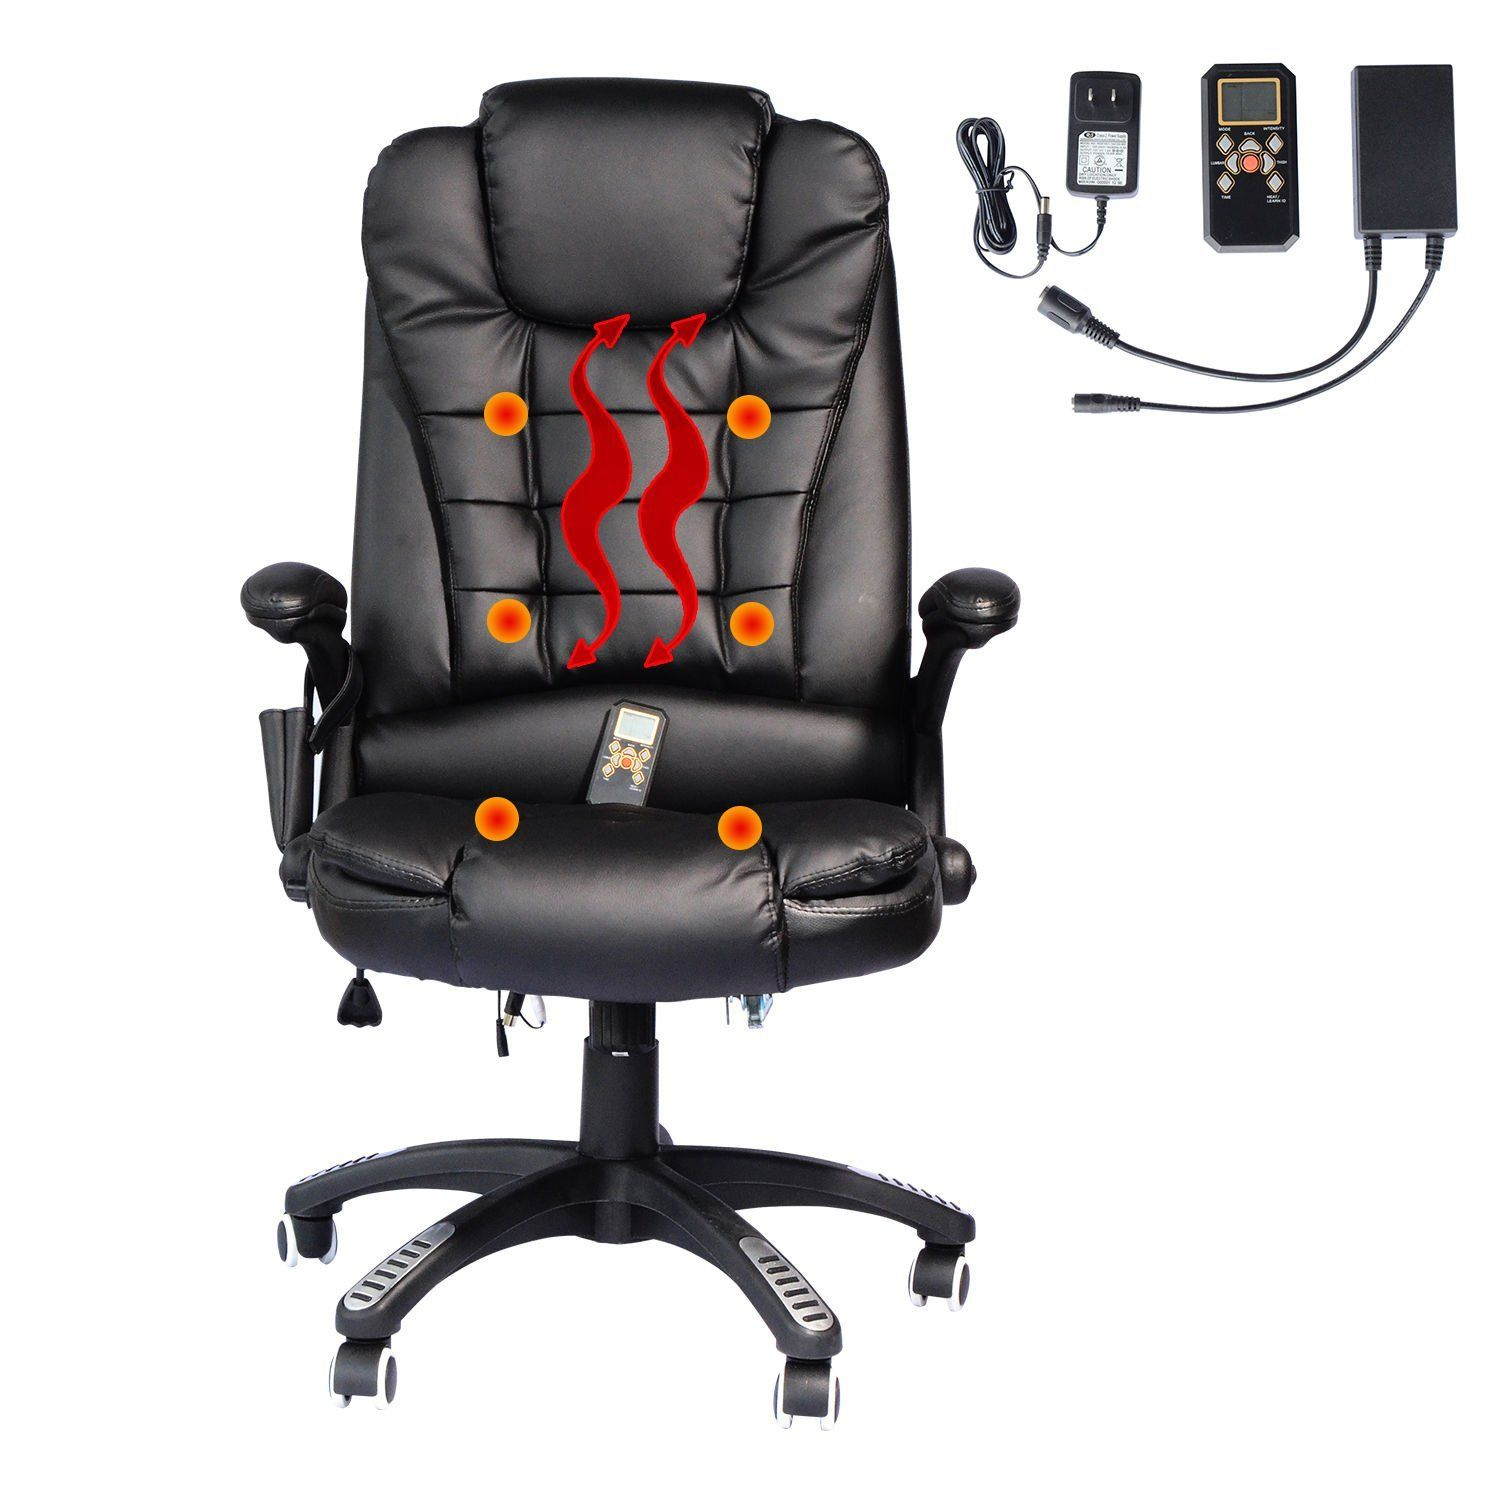 Executive Office Chairs Canada Office Massage Chair Ergonomic Chair Office Chair